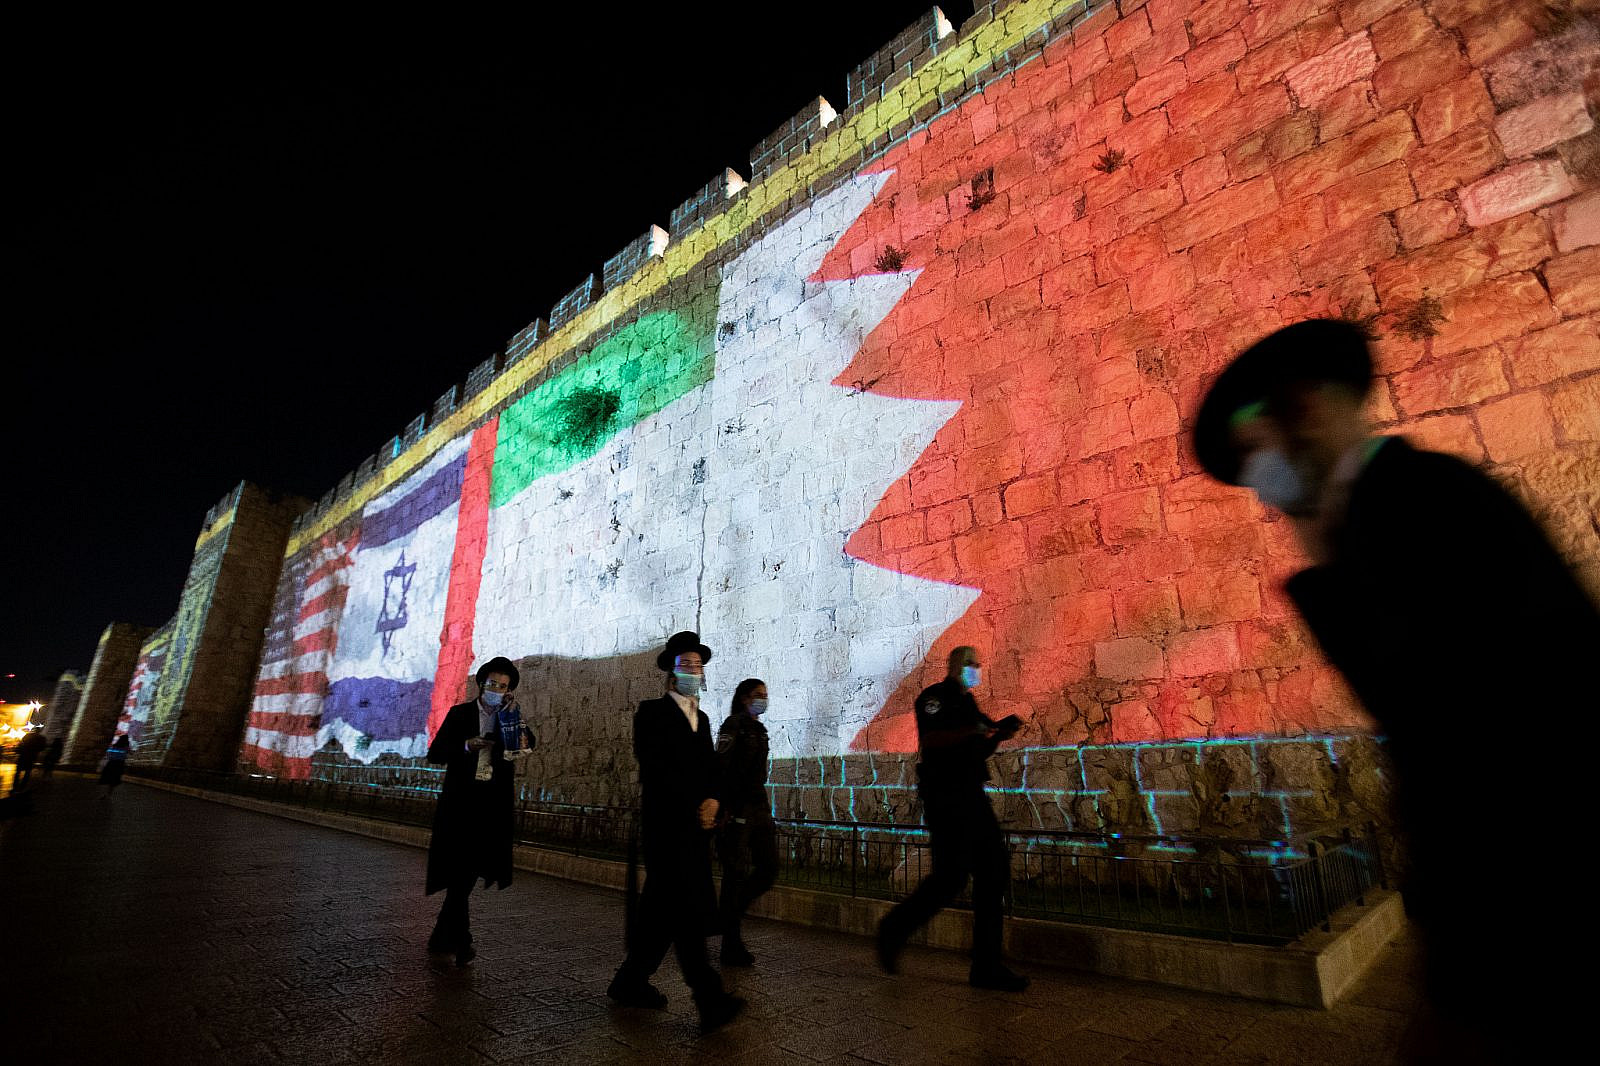 The flags of the U.S., United Arab Emirates, Israel, and Bahrain are screened on the walls of Jerusalem's Old City, September 15, 2020. (Yonatan Sindel/Flash90)